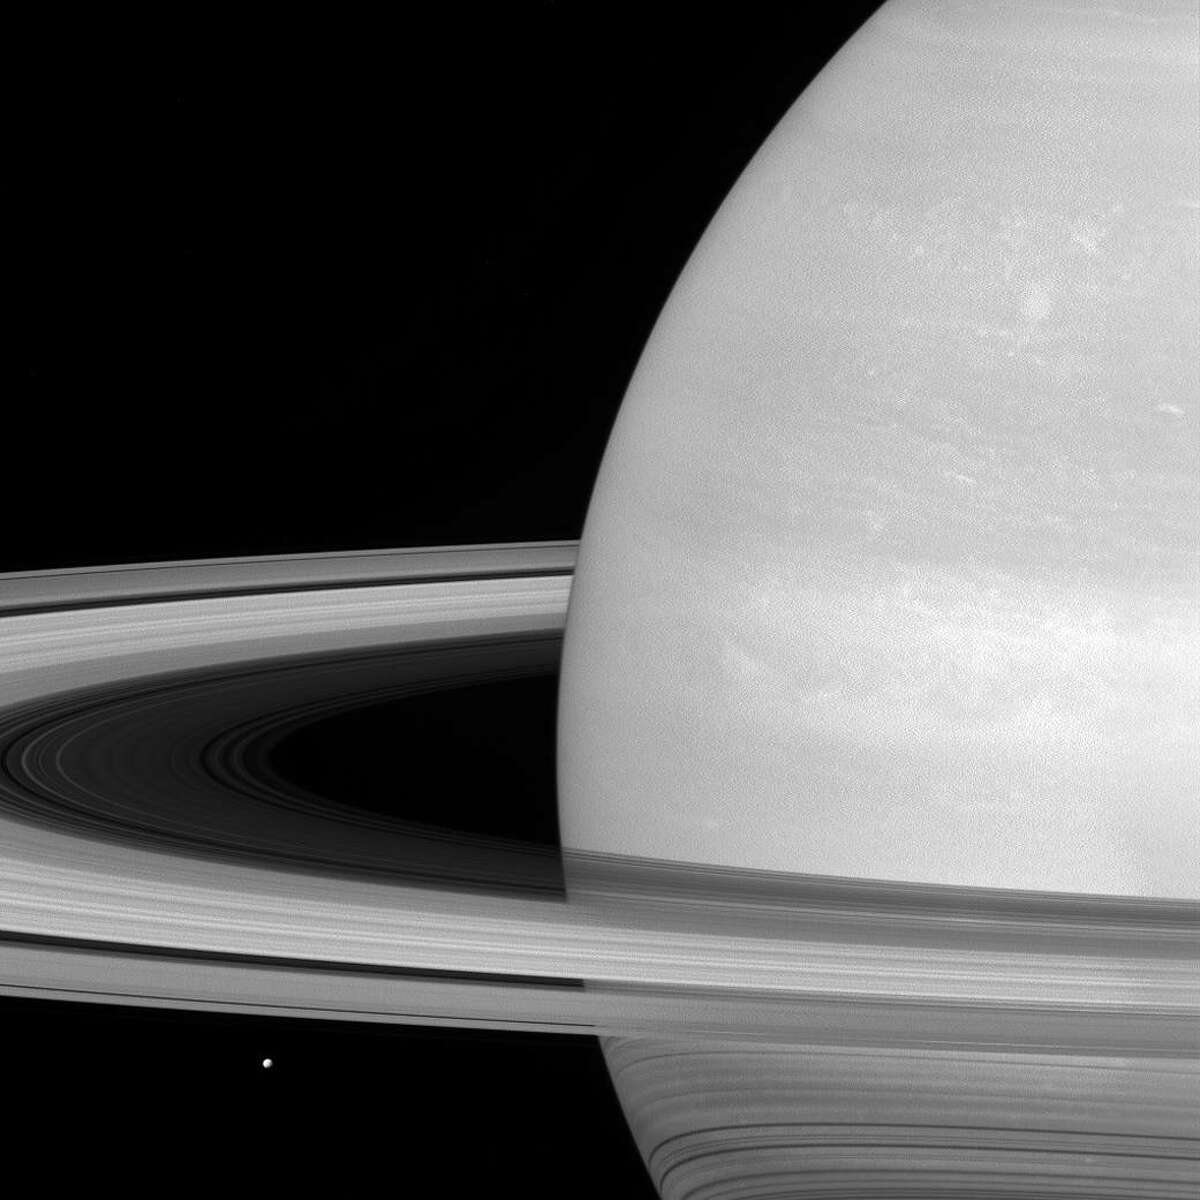 NASA caption: Saturn's icy moon Mimas is dwarfed by the planet's enormous rings.